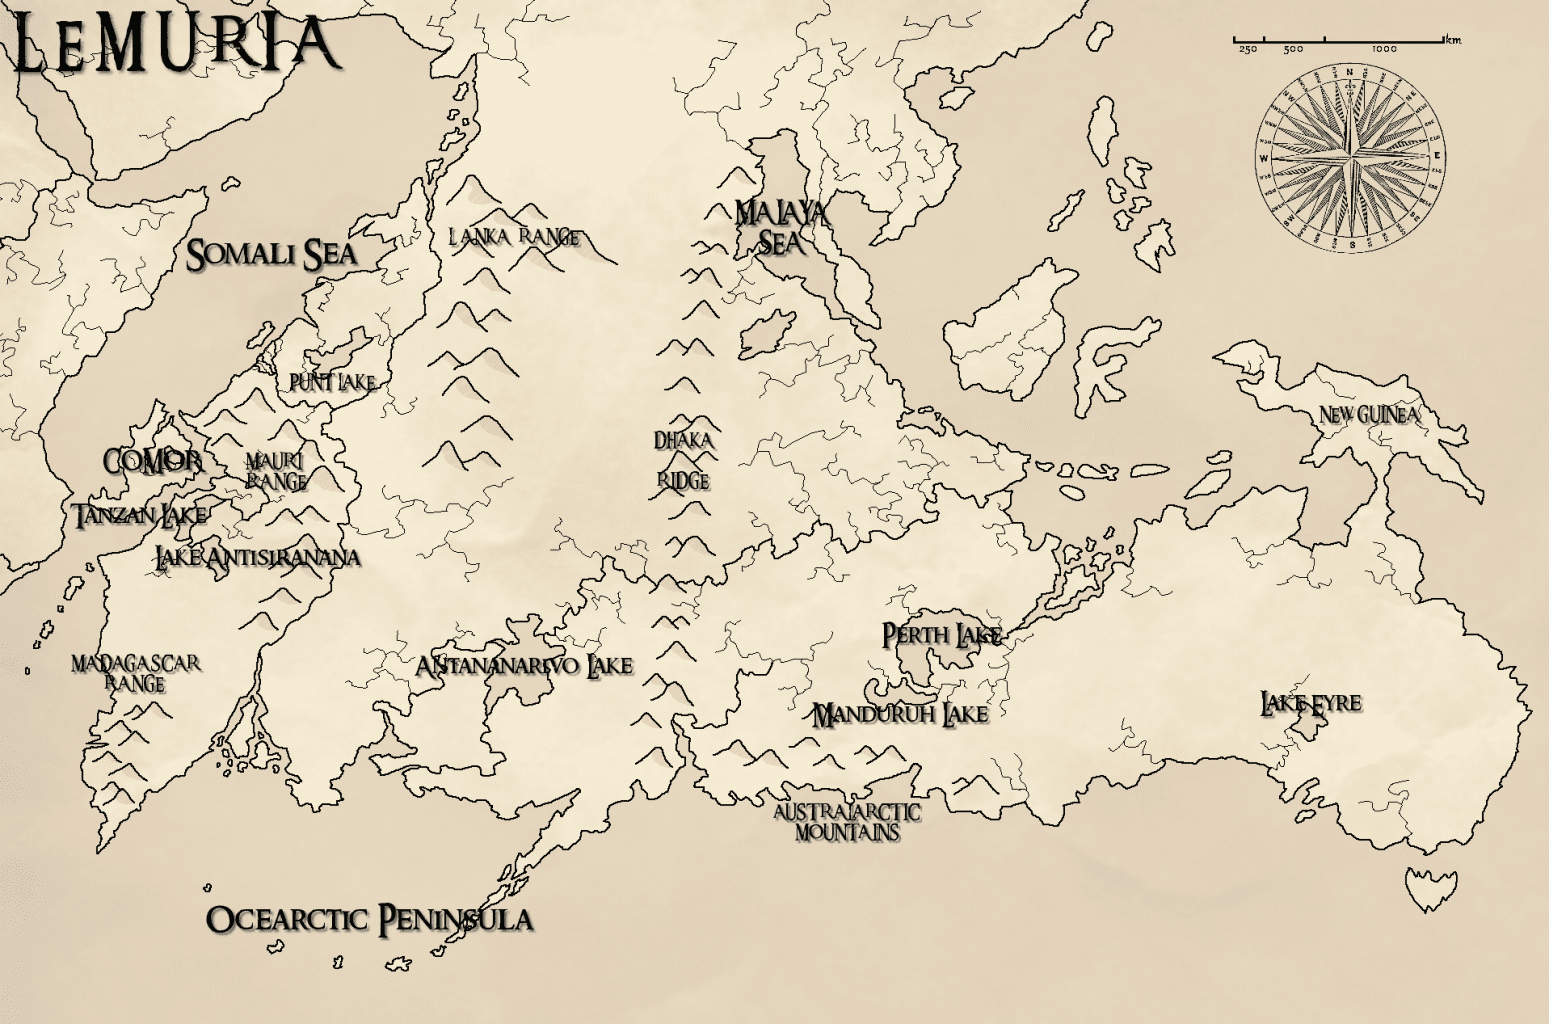 A detailed imaginary map of Lemuria based on the legends. Credit: Reddit